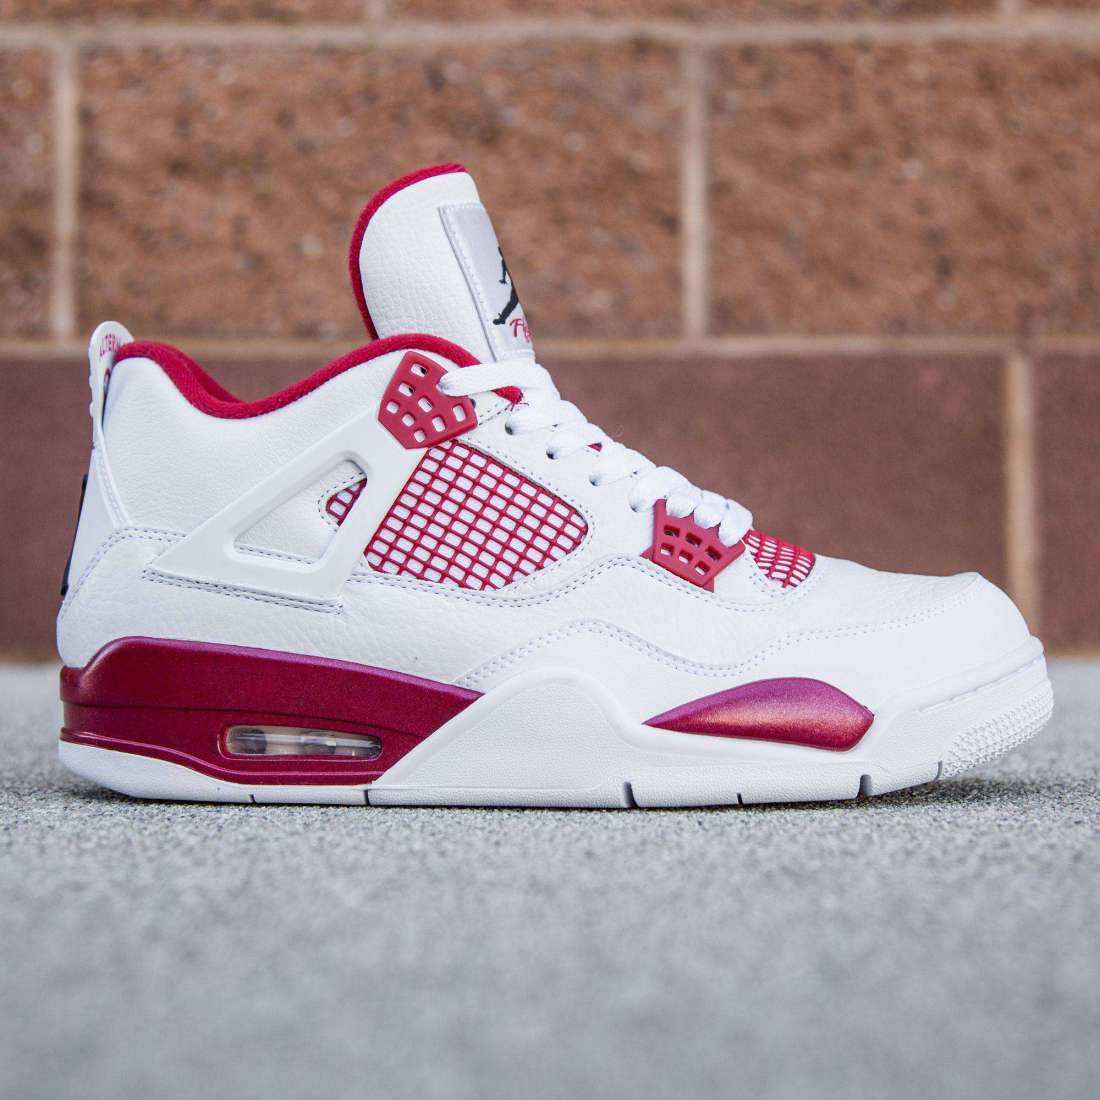 the latest 8b13d ca7d9 Jordan Men Air Jordan 4 Retro - Alternate (white / black / gym red)